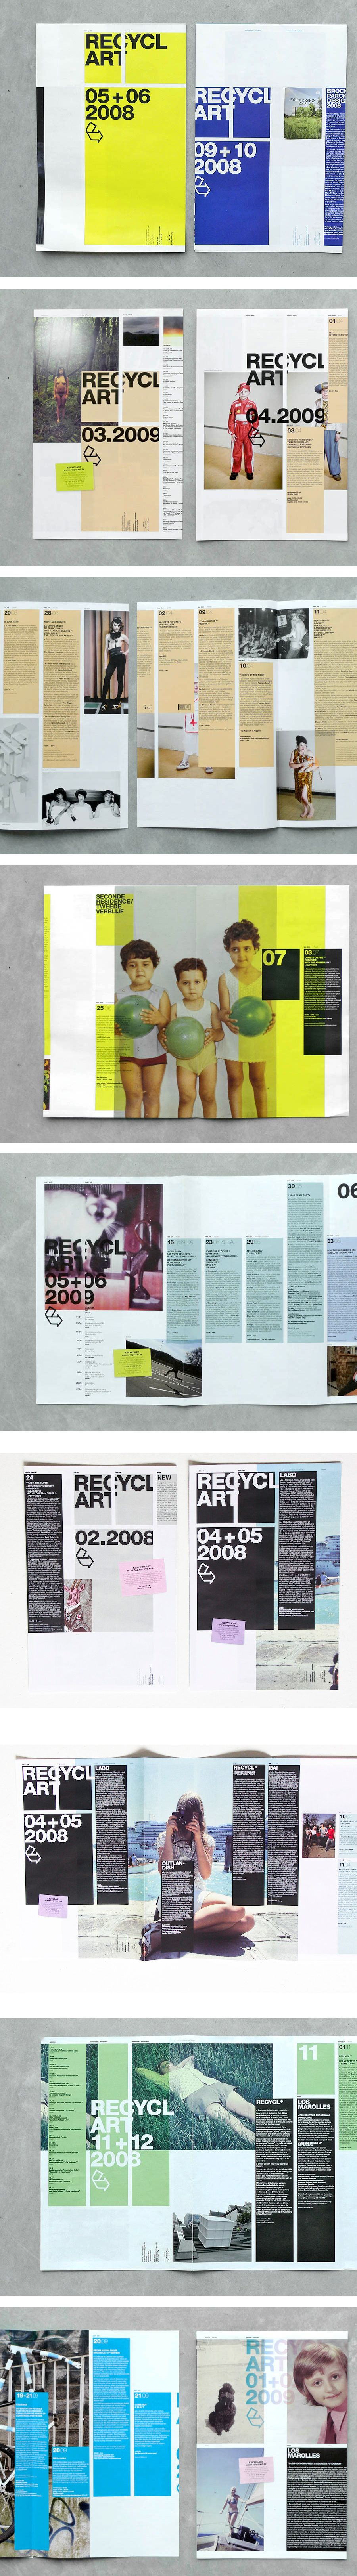 Recyclart 2009 #magazine #layout I really like the color blocks and the photos a...